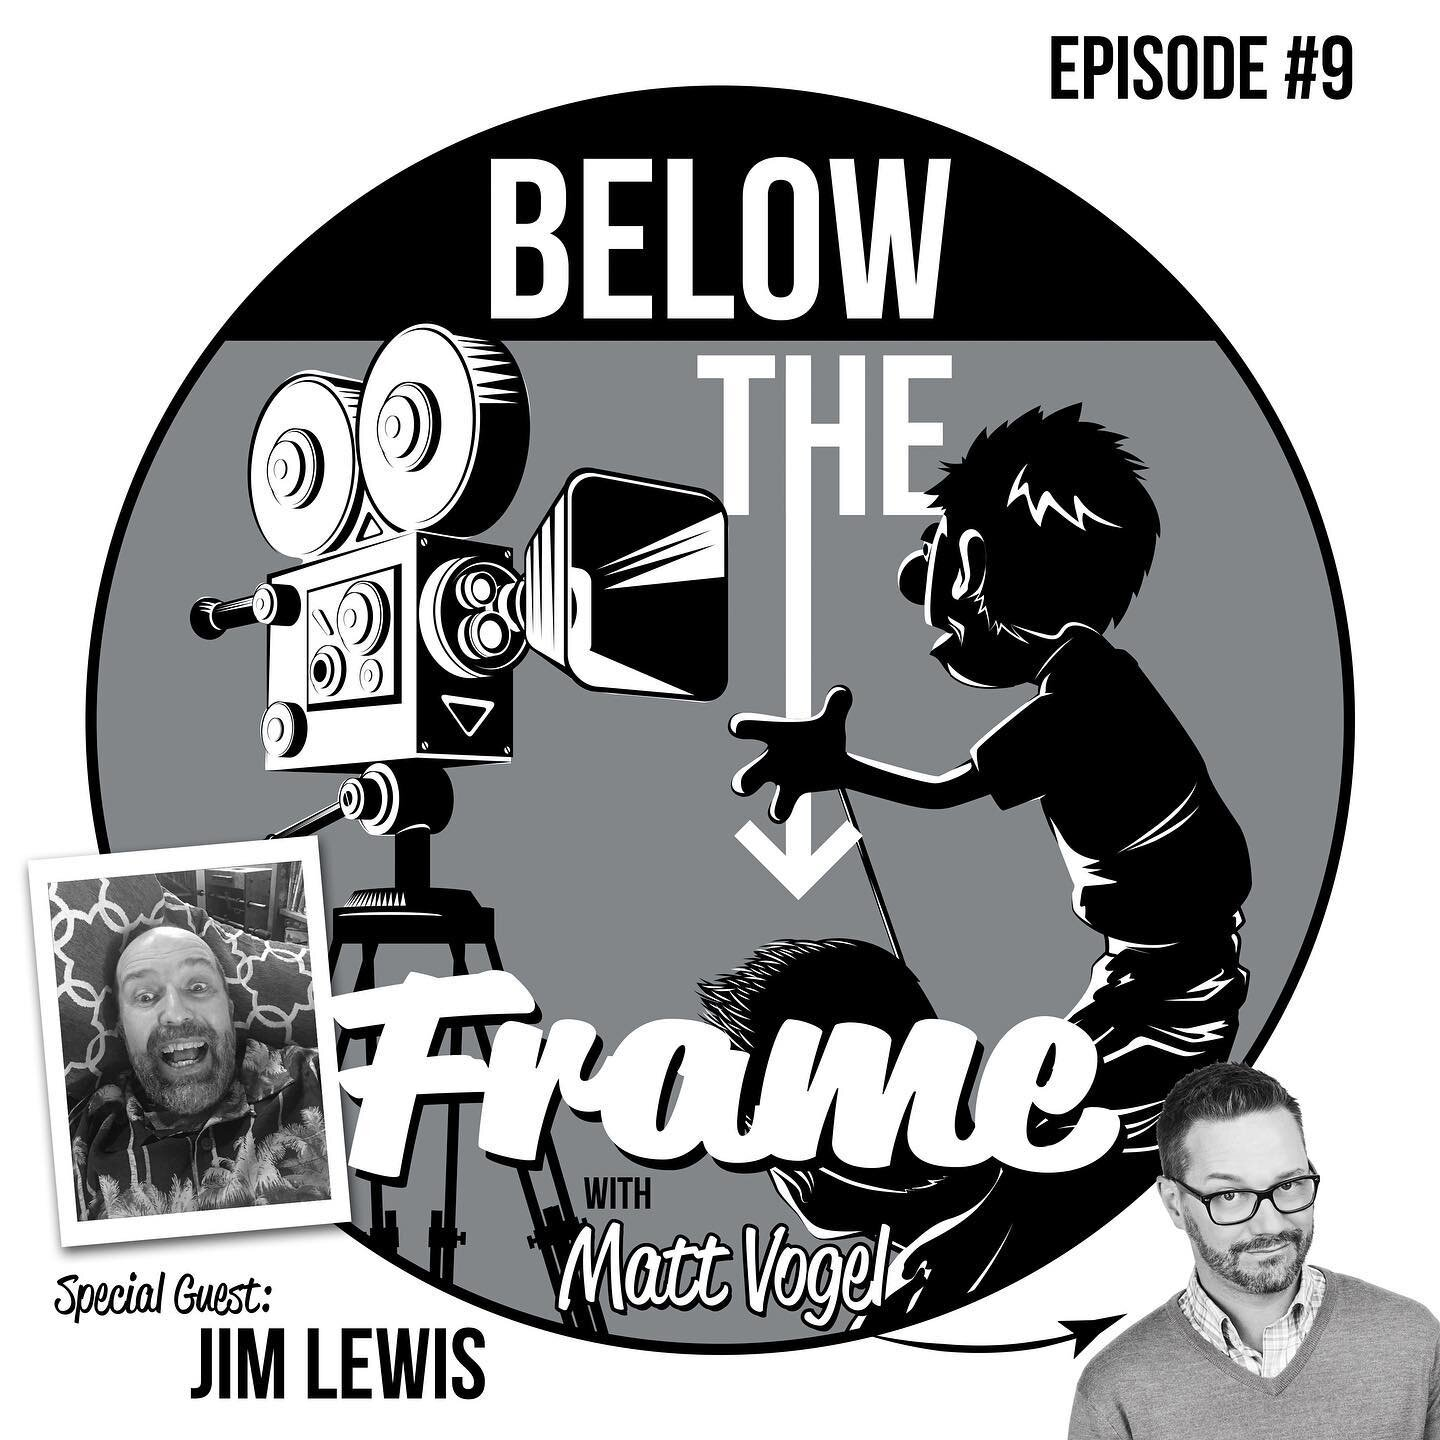 "On this episode of Below the Frame, Matt talks with Muppet writer Jim Lewis about writing for Miss Piggy, collaborating with the Muppet Performers, and his family's funeral home business.  Matt introduces David Rudman who talks about Jerry Nelson and reads a ""Jerry Story"". We also hear a song recorded live at a jam up at Jerry's house on Cape Cod. . . @belowtheframe #muppetperformer #muppets #sesamestreet #podcasts #puppets #puppetry #puppeteer #dreamjob #mattvogel #jimlewis #jimhenson #jerrynelson #davidrudman #scooter #janice #cookiemonster"